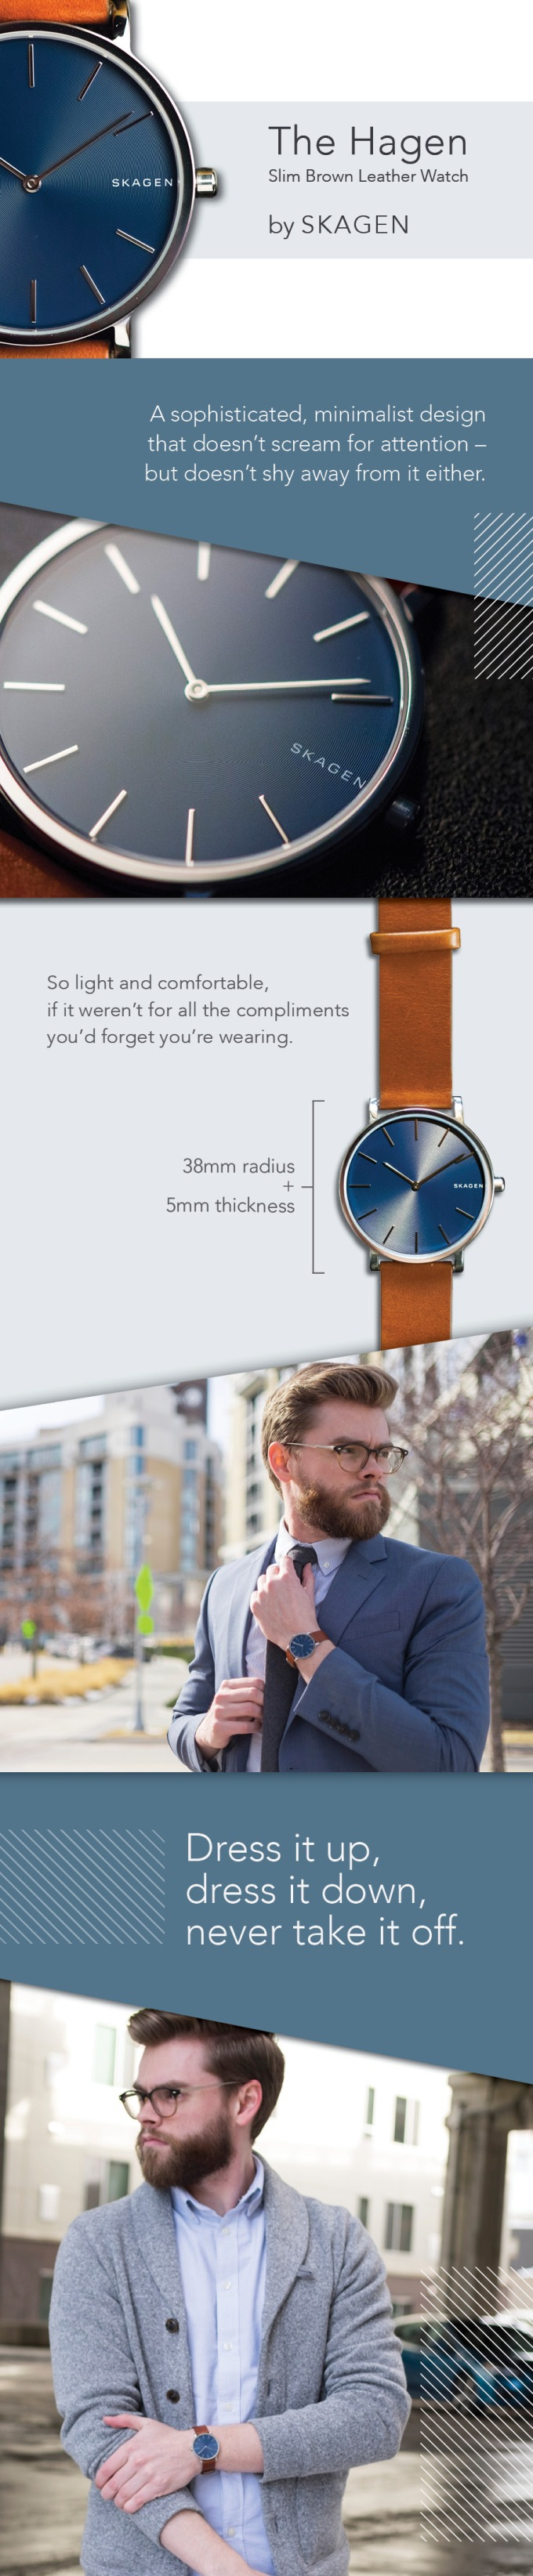 skagen watch stylescape test 10